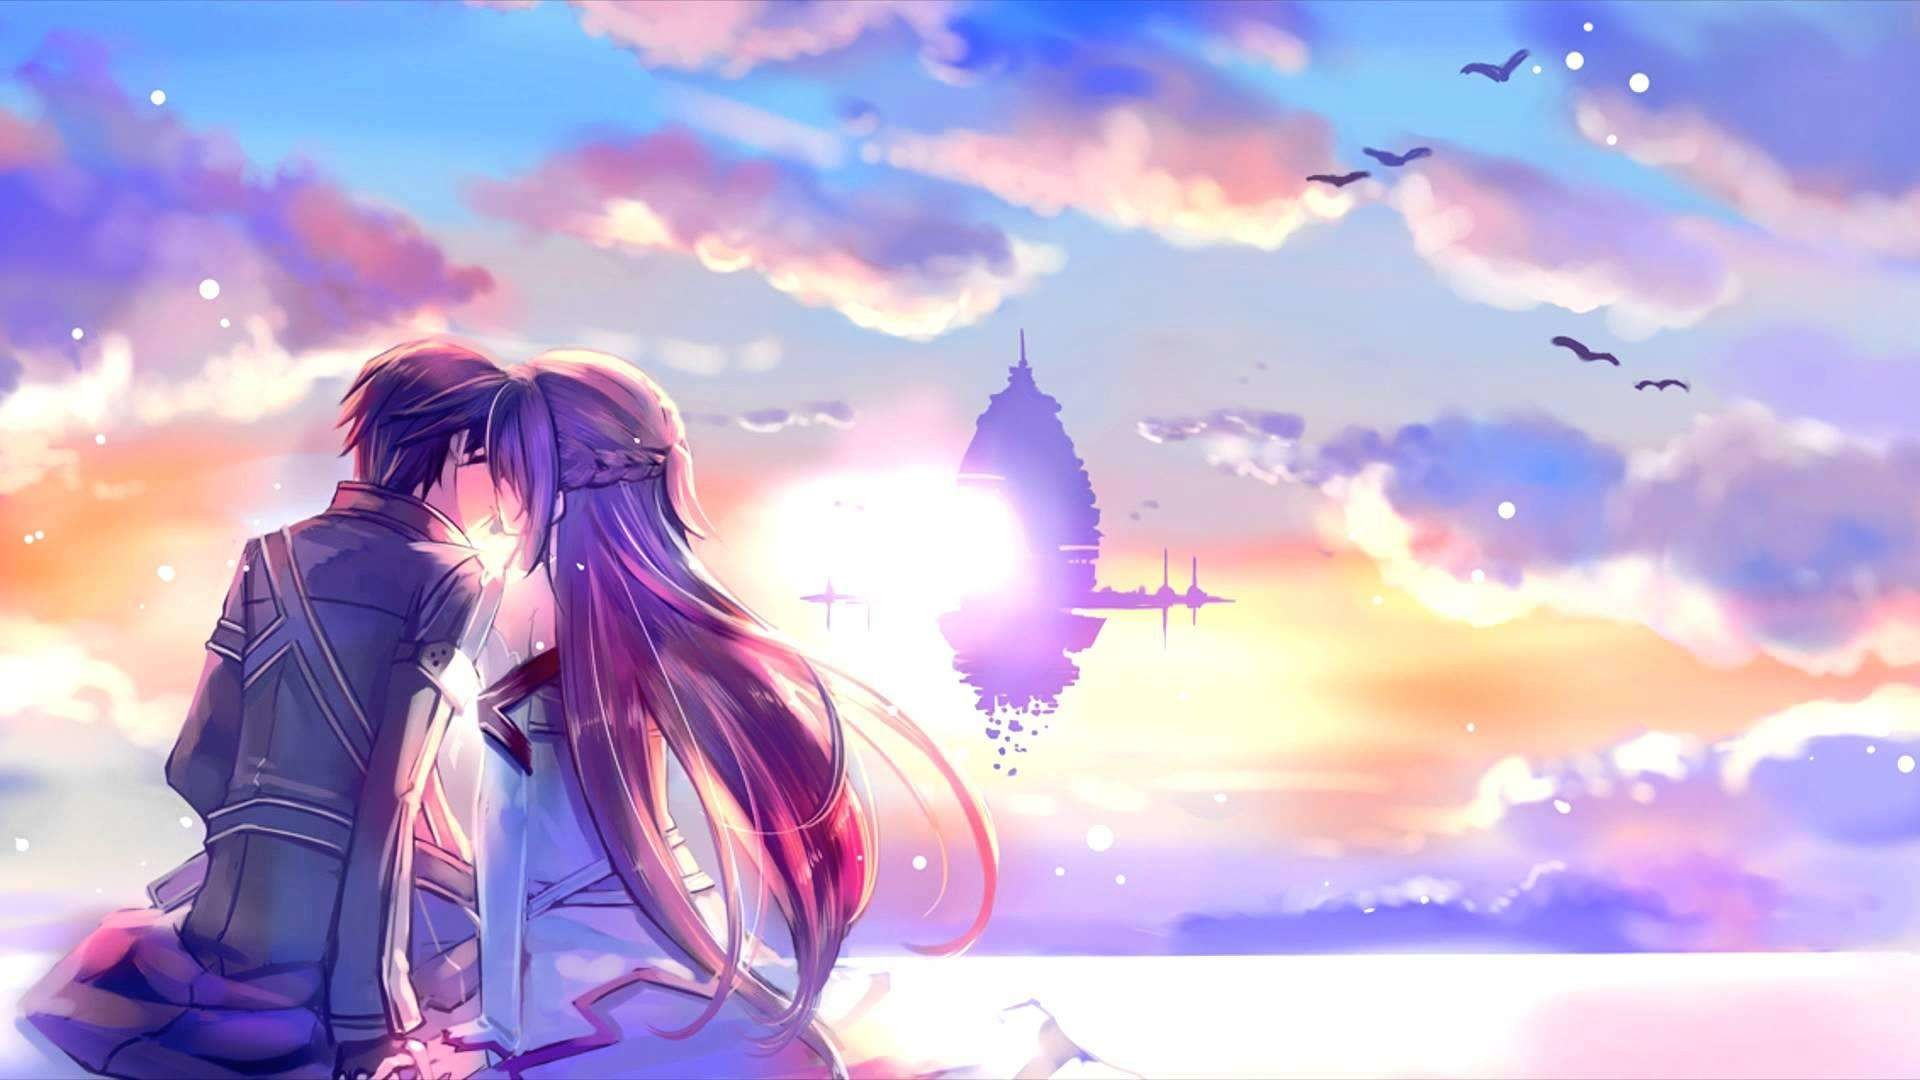 1920x1080 1080p Anime Background Download Free.